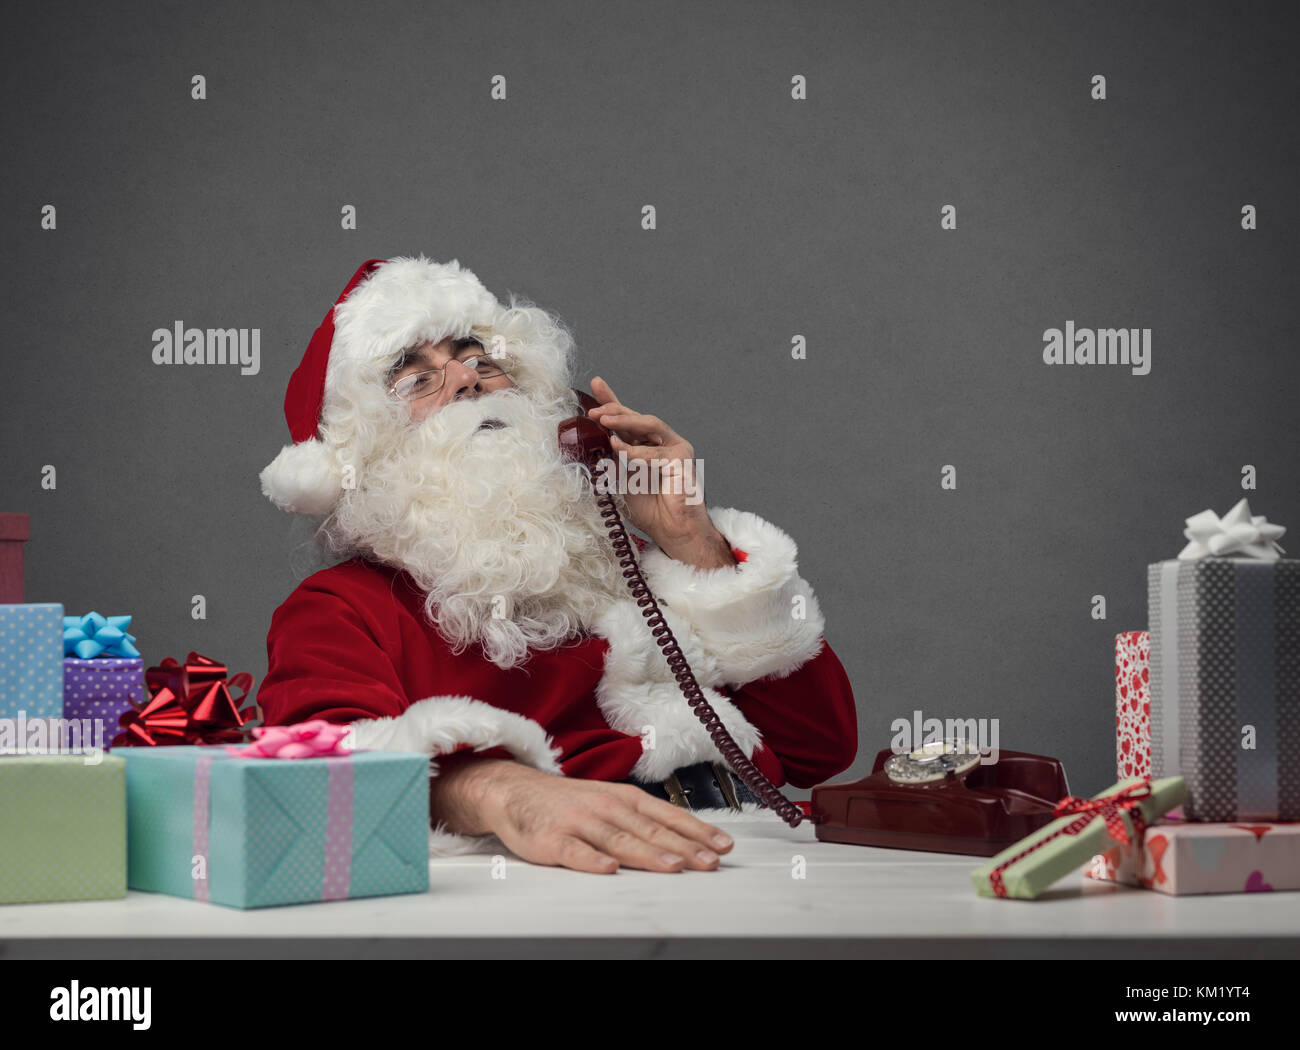 Serene Santa Claus answering phone calls on Christmas Eve and preparing gifts, he is holding the receiver and listening - Stock Image